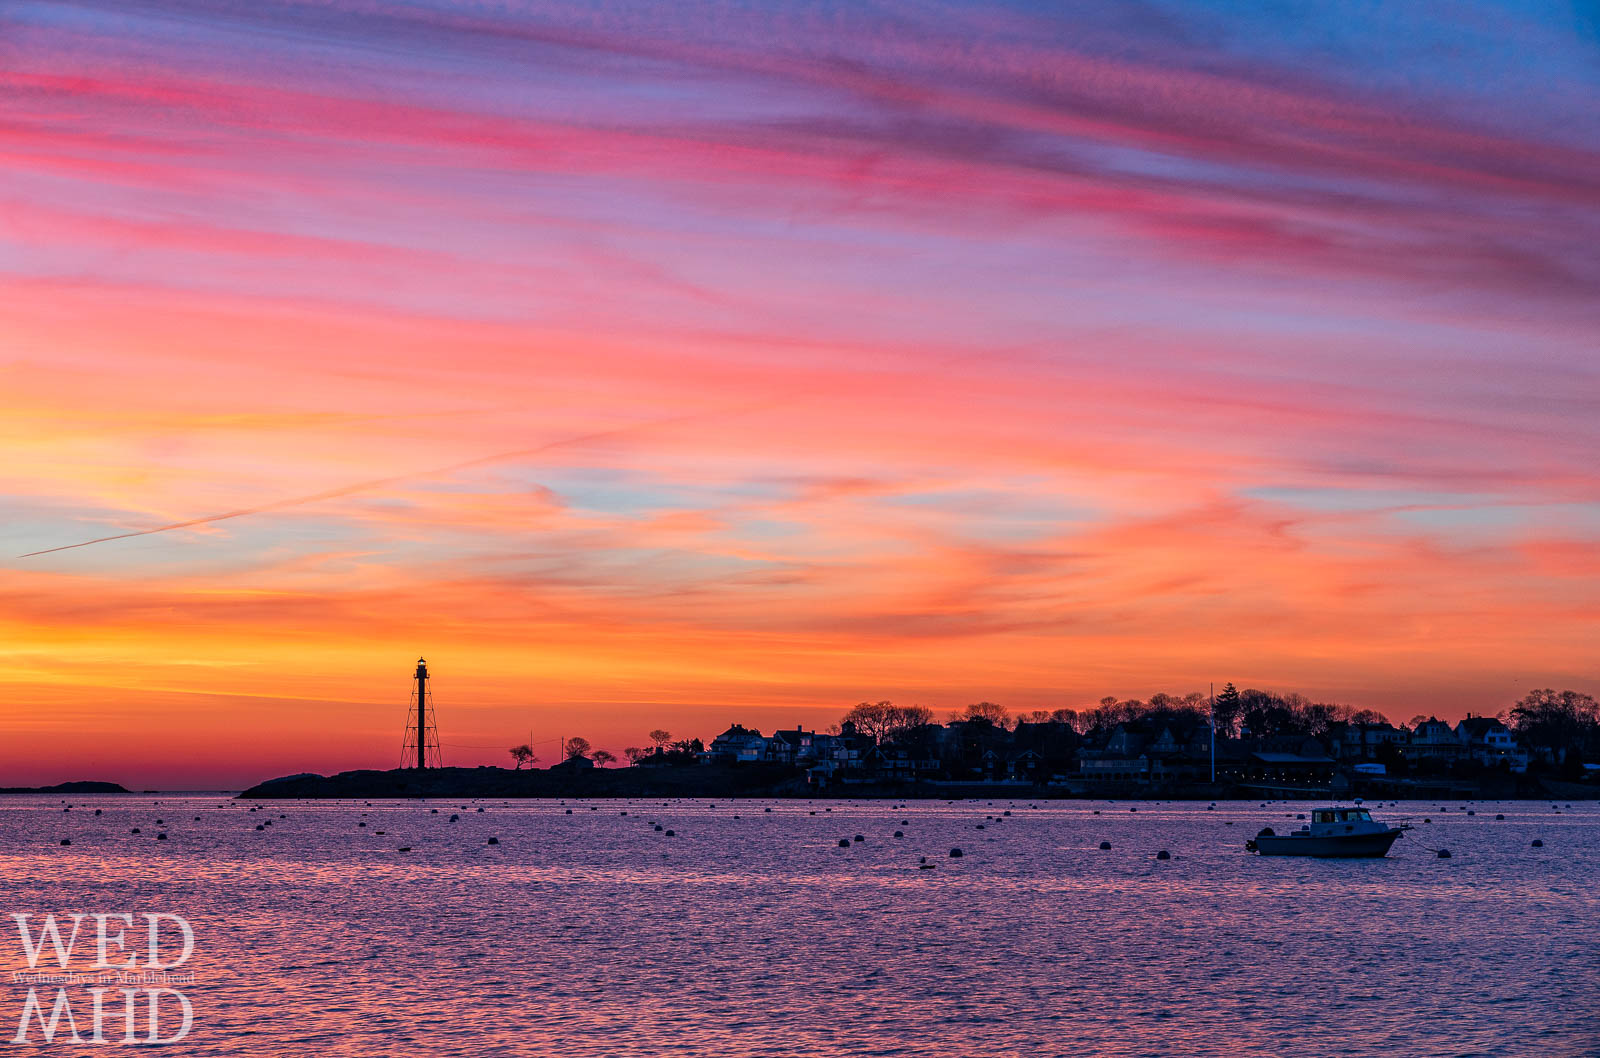 Orange, pink and purple light paints the sky and Marblehead Harbor in dawns early light